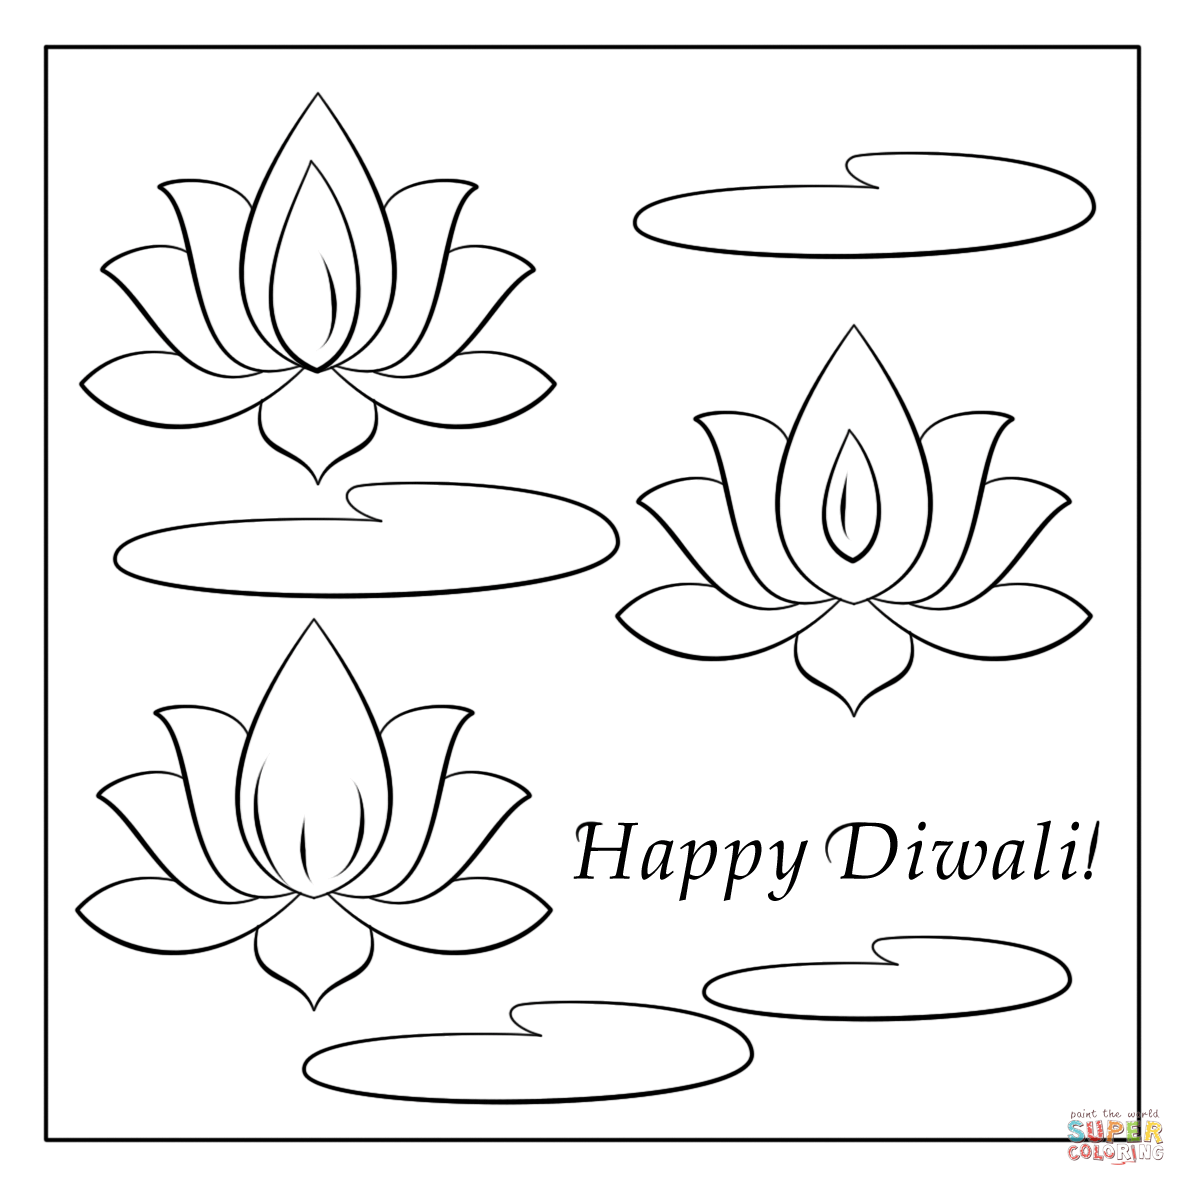 1186x1186 Happy Diwali Card Coloring Page Free Printable Pages Sketch